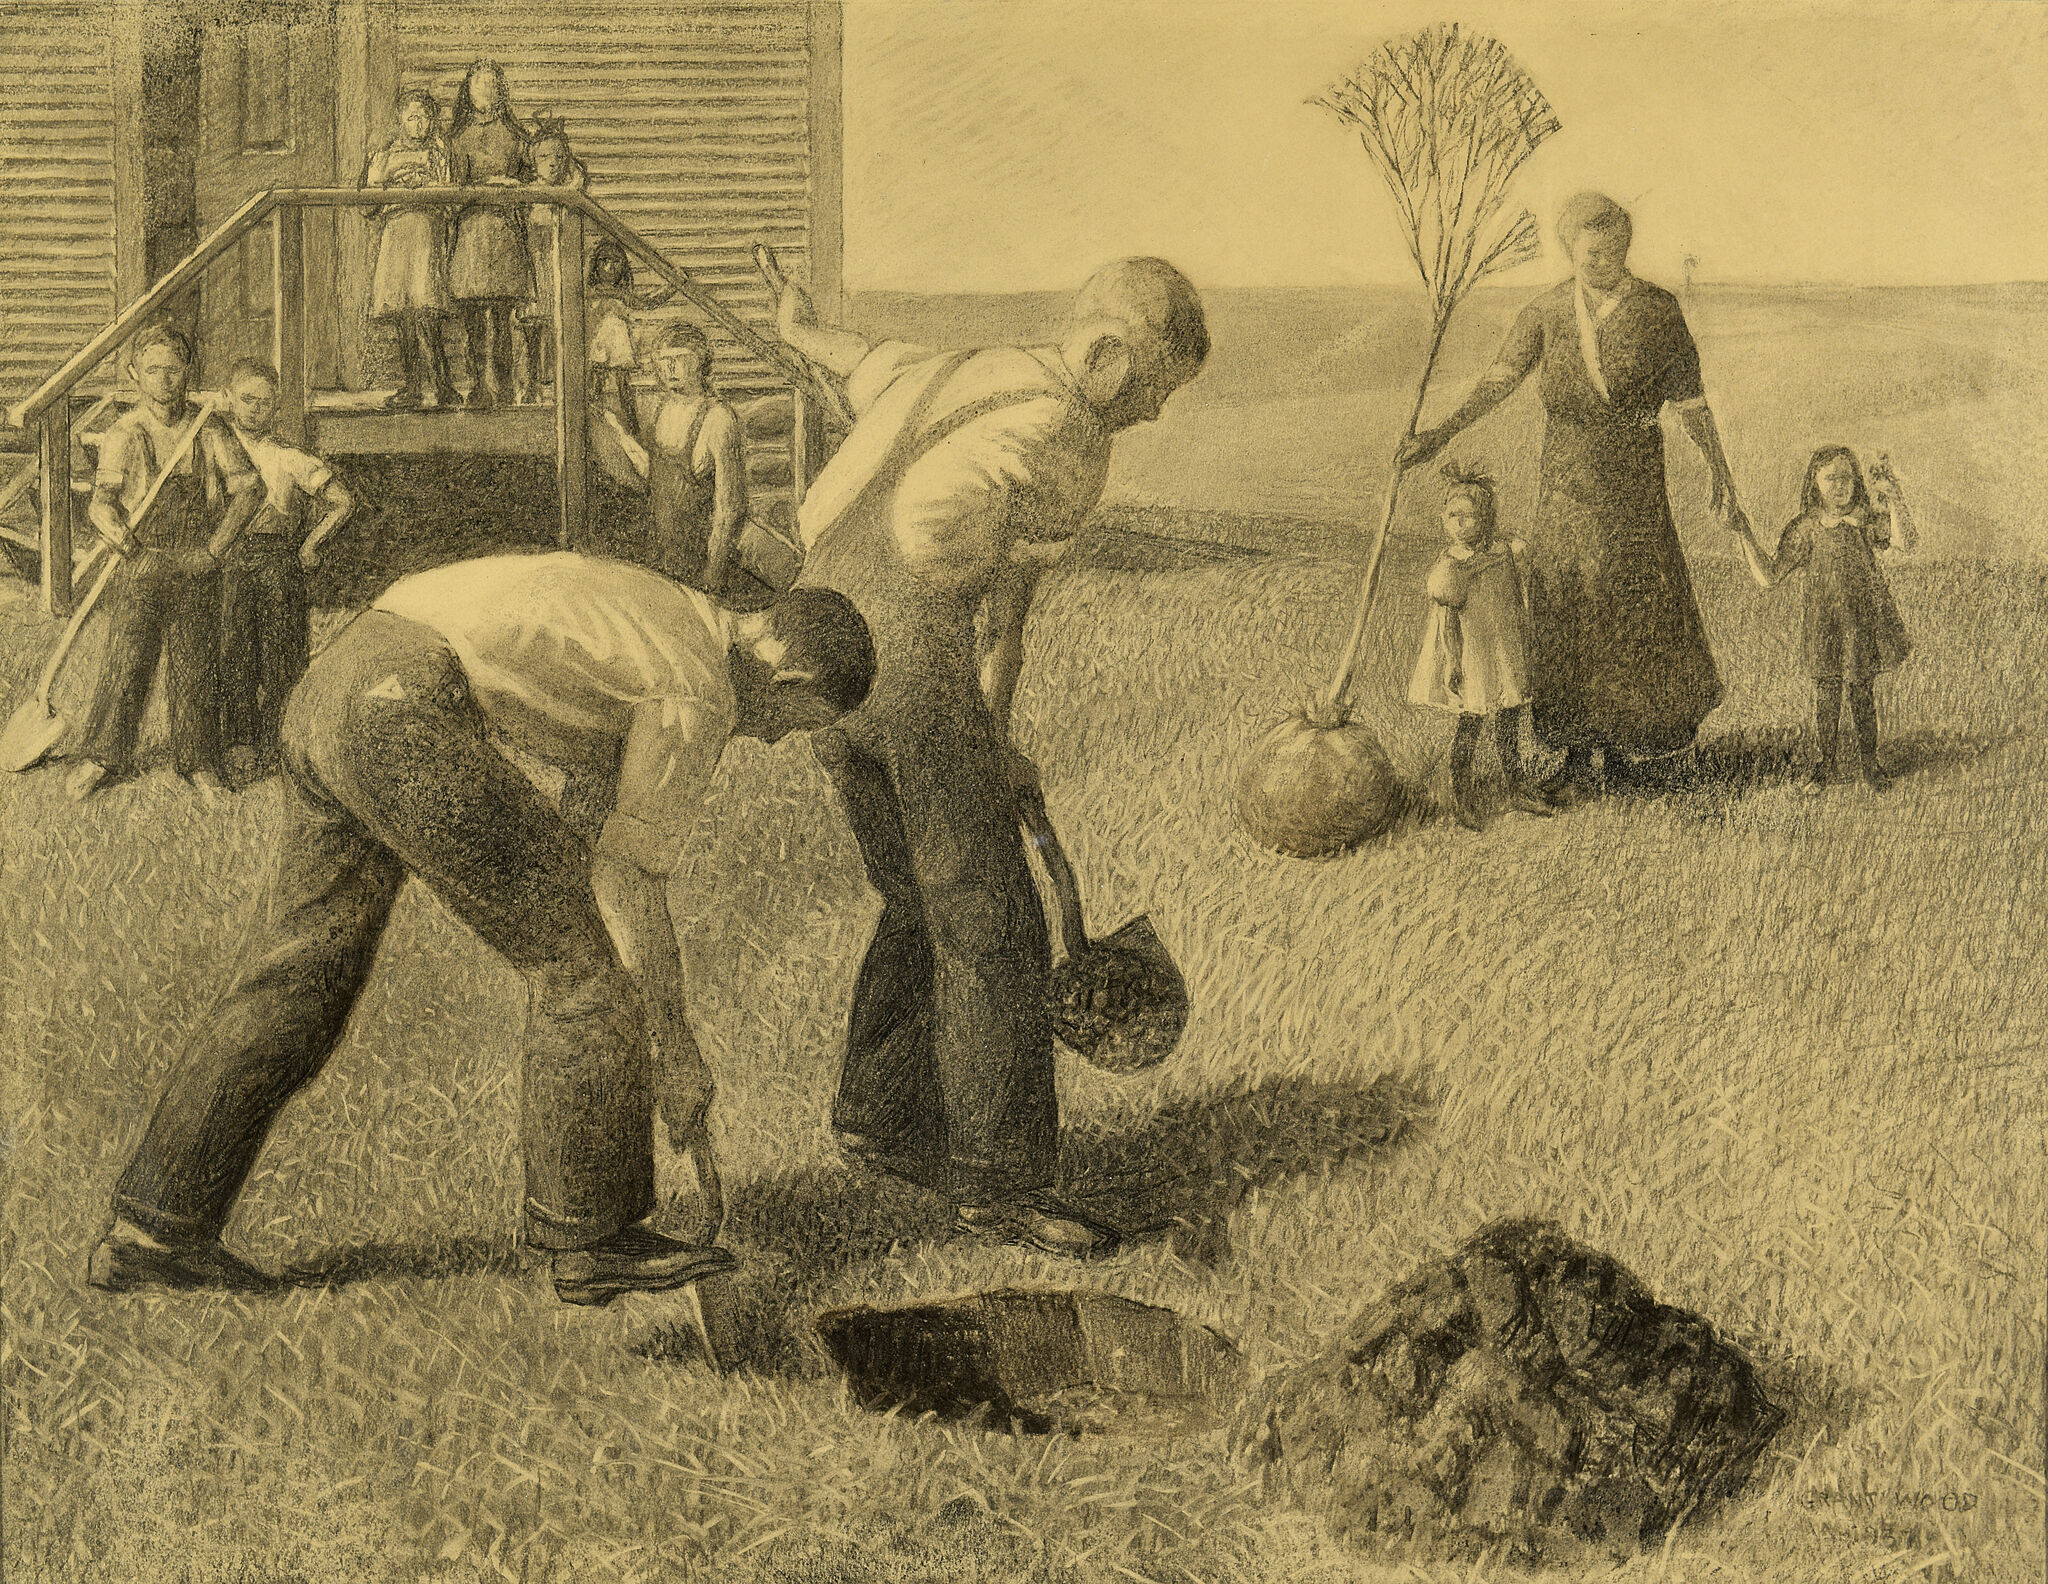 Sketch of two men digging in earth to plant trees, a woman and several children observe.